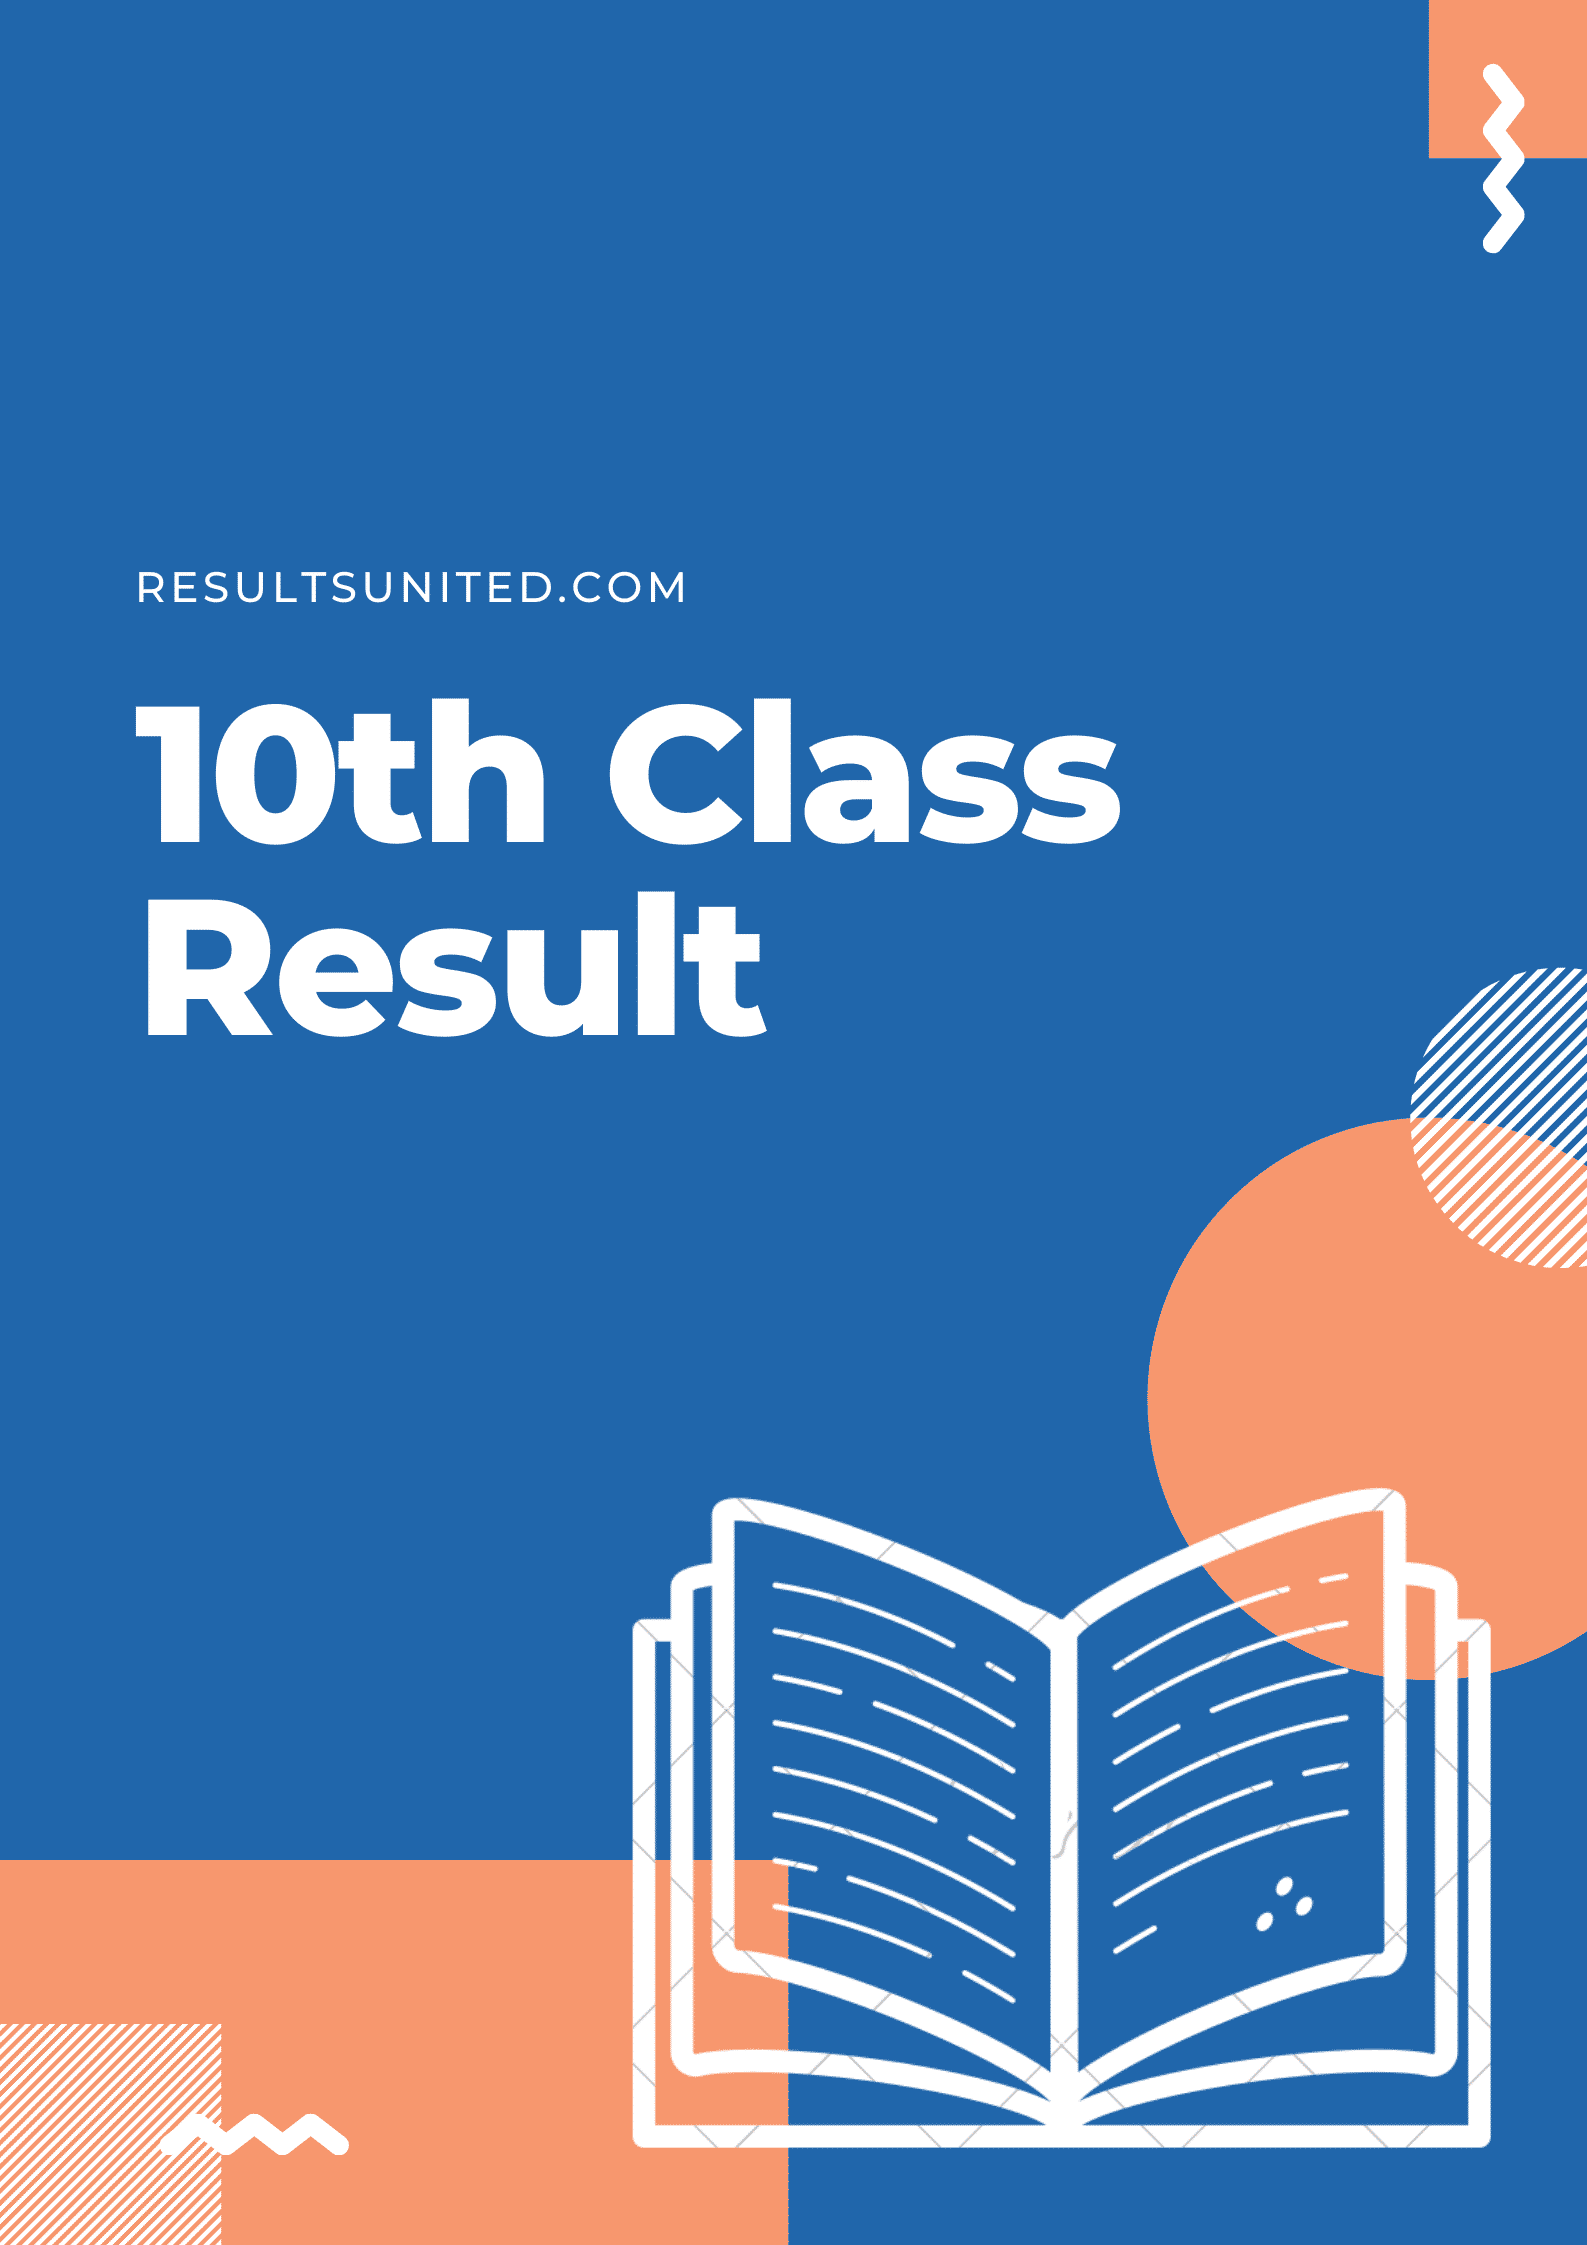 10th class result